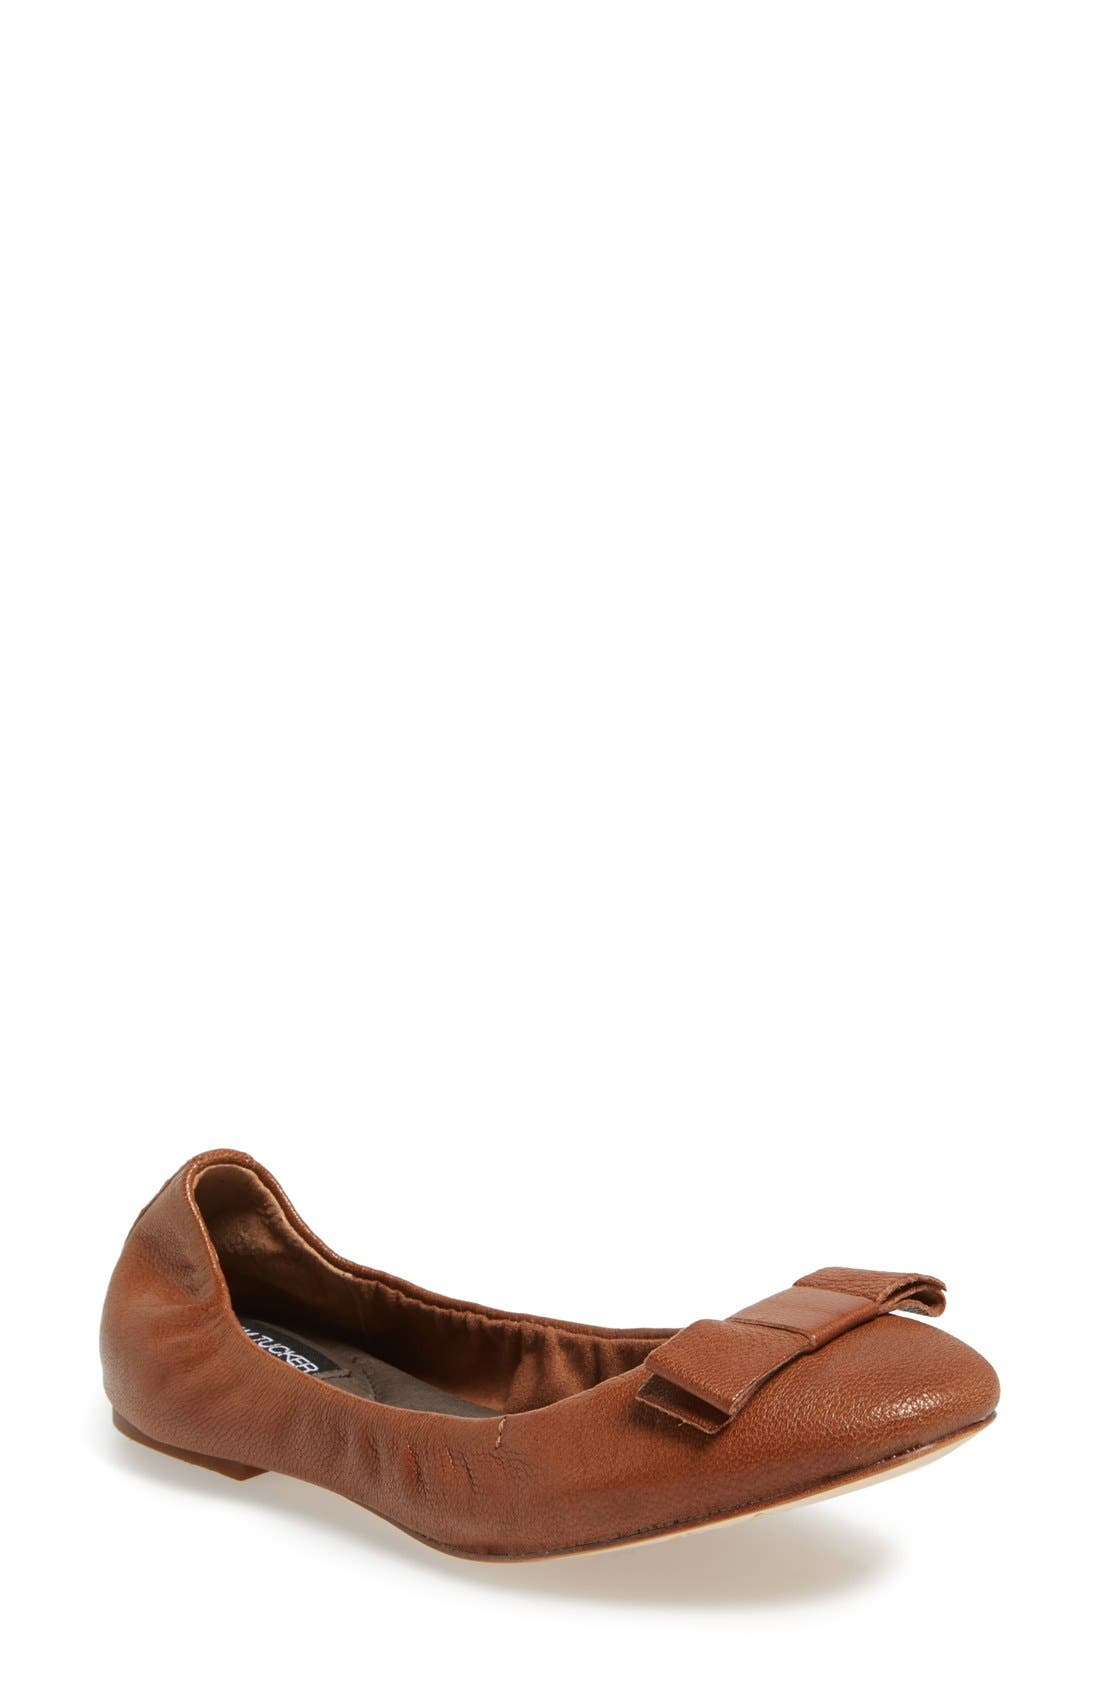 Main Image - Adam Tucker Me Too 'Prescott' Leather Ballet Flat (Women)